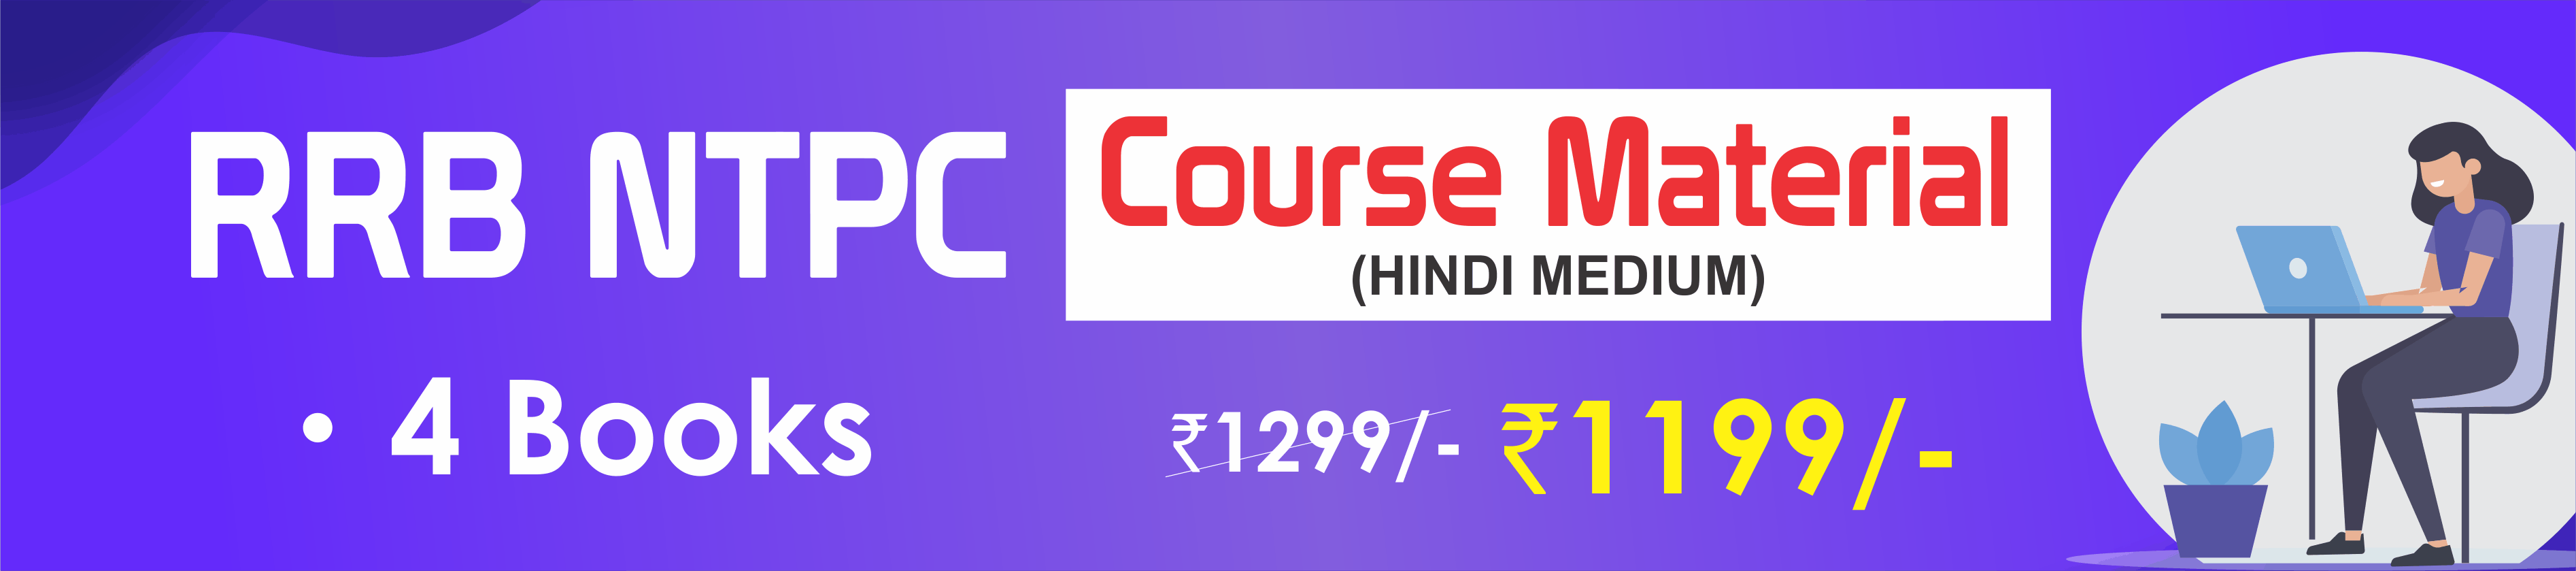 rrb ntpc course material hindi medium